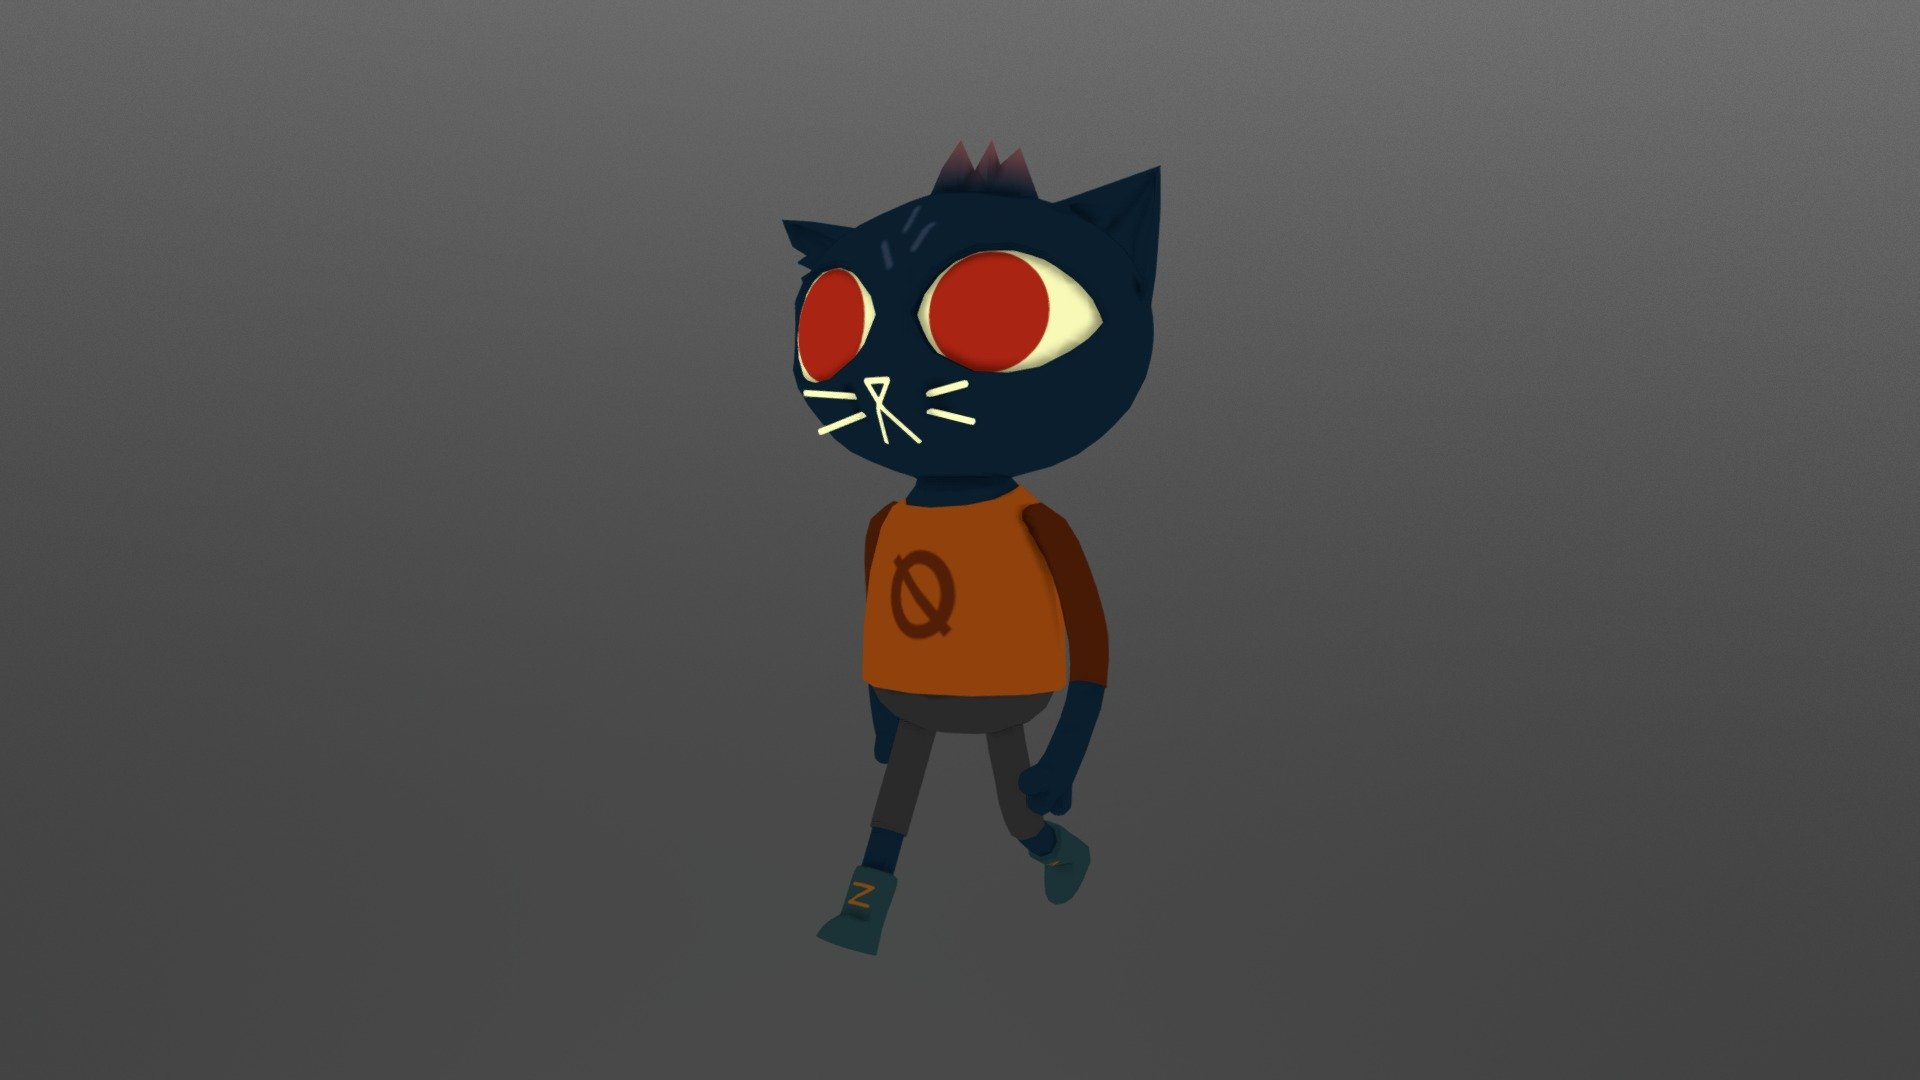 Mae Borowski Rigged Download Free 3d Model By Asterisk Dylee063 21b0649 Sketchfab See more of mae borowski on facebook. mae borowski rigged download free 3d